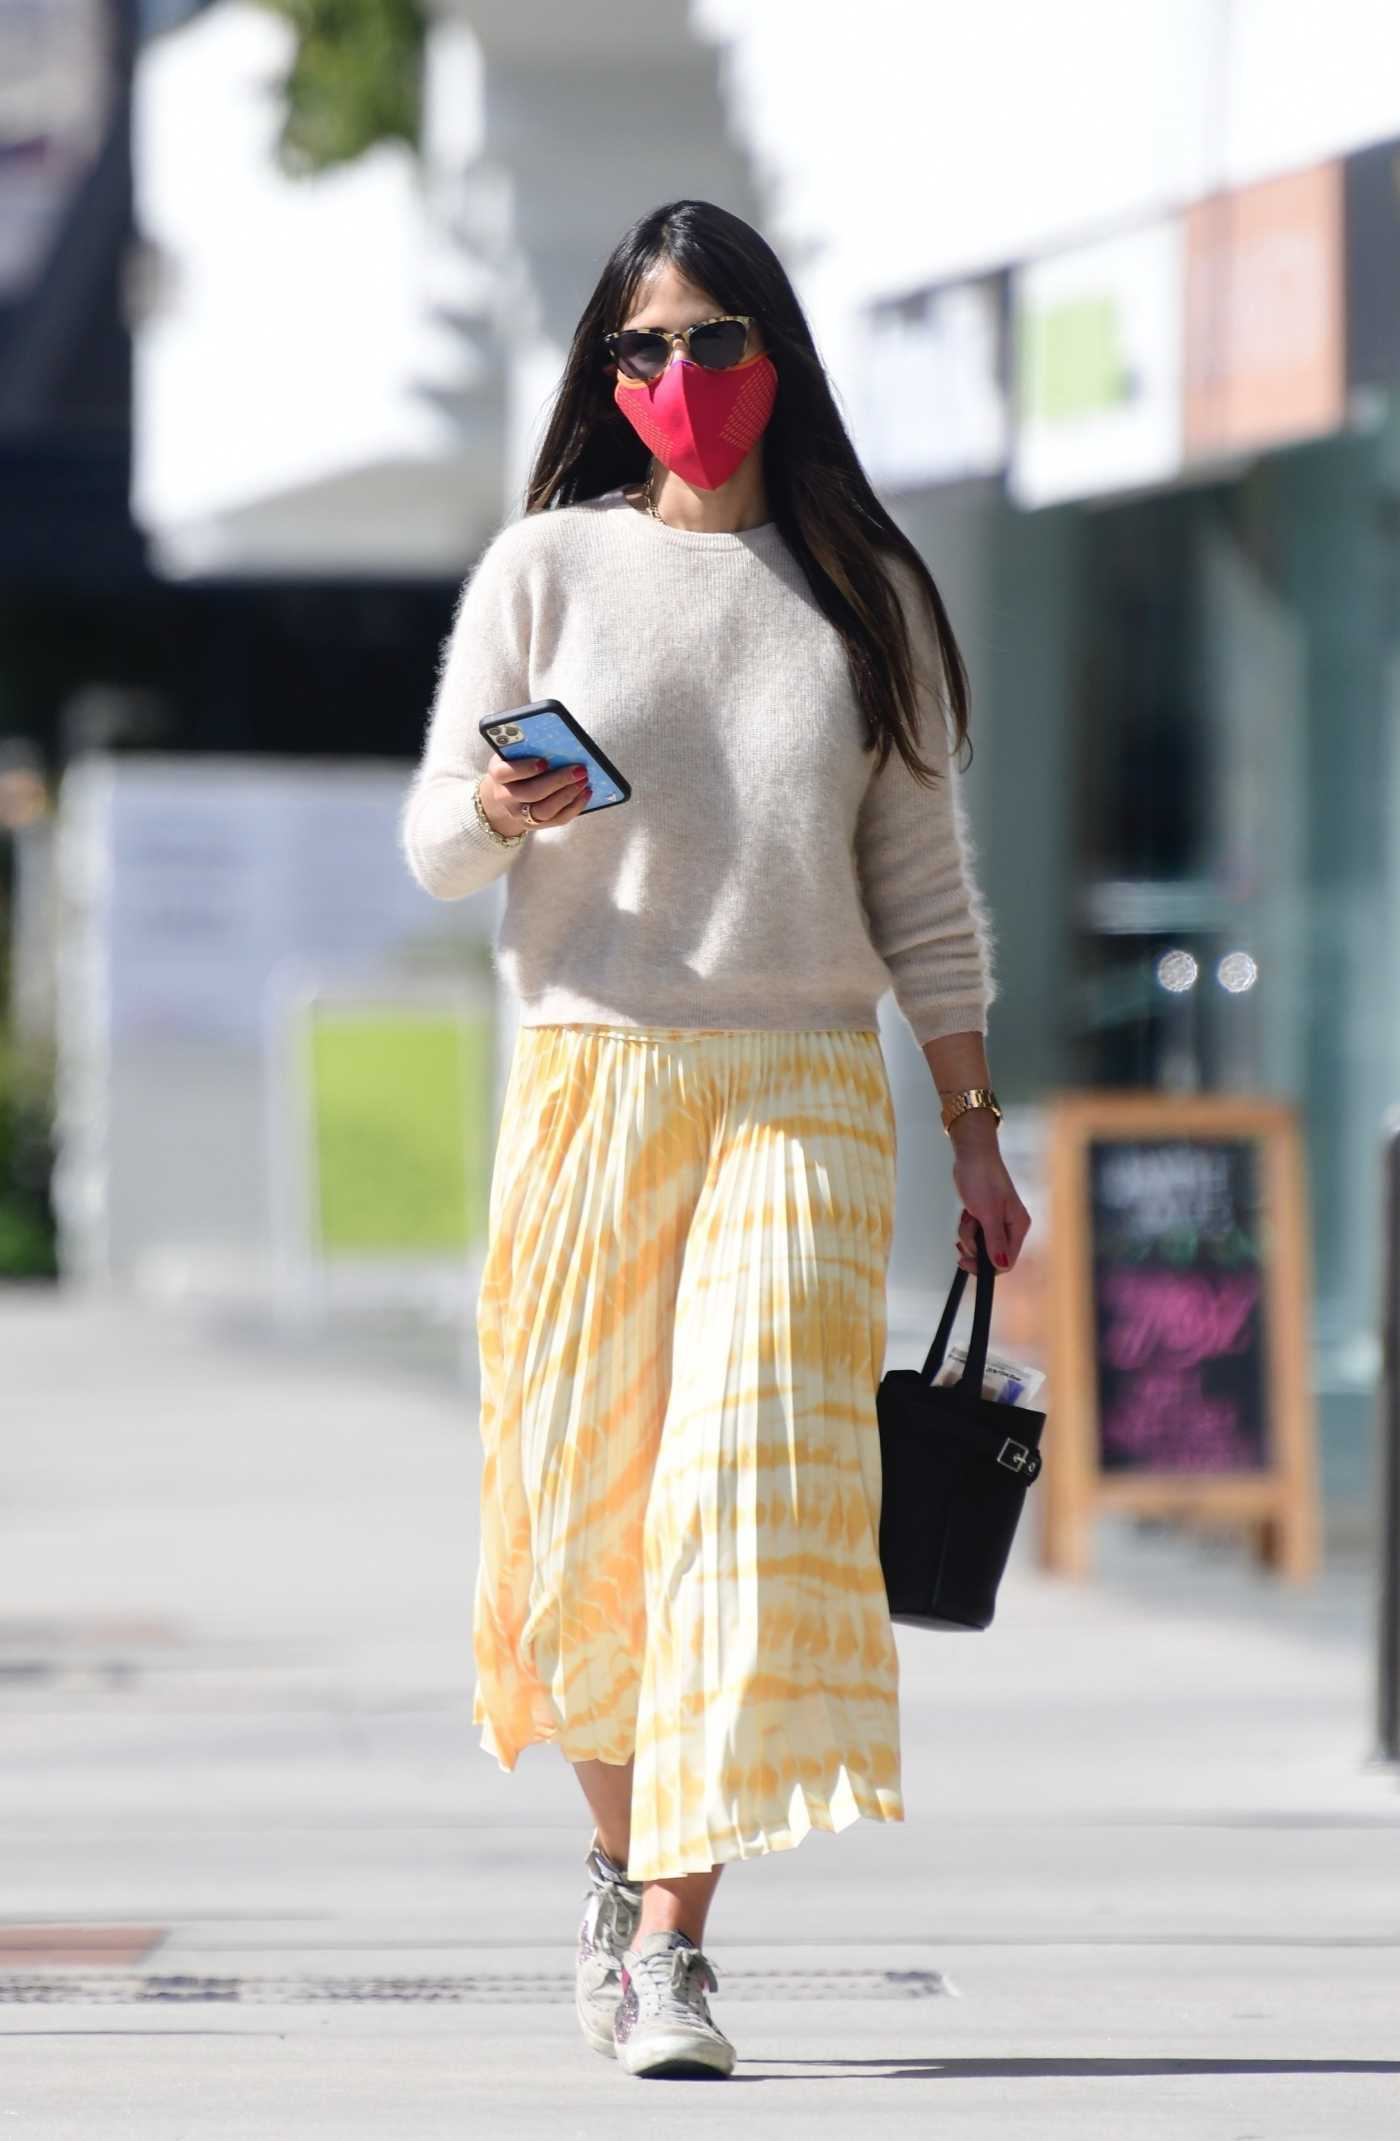 Jordana Brewster in a Yellow Skirt Was Seen Out in Brentwood 02/20/2021